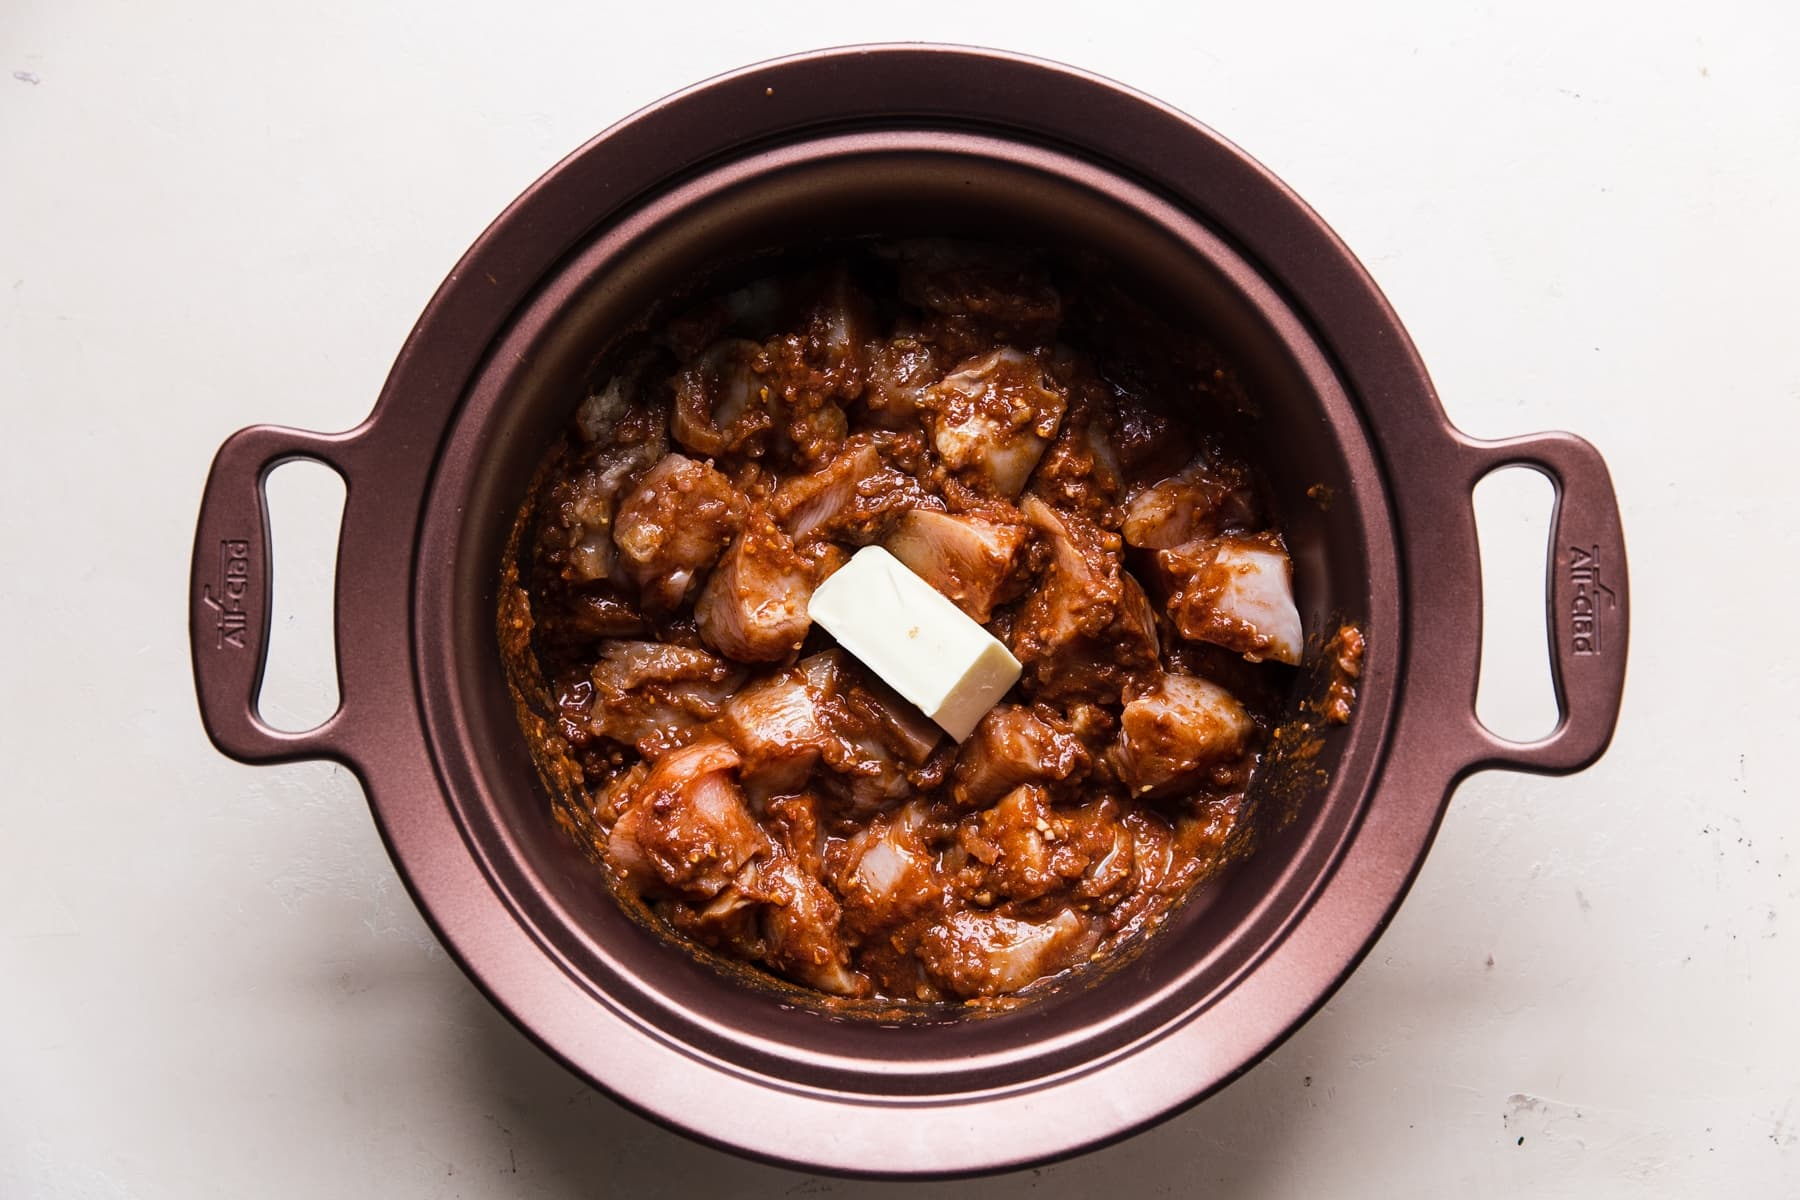 raw chicken mixed together with tomato paste and spices topped with butter in a slow cooker